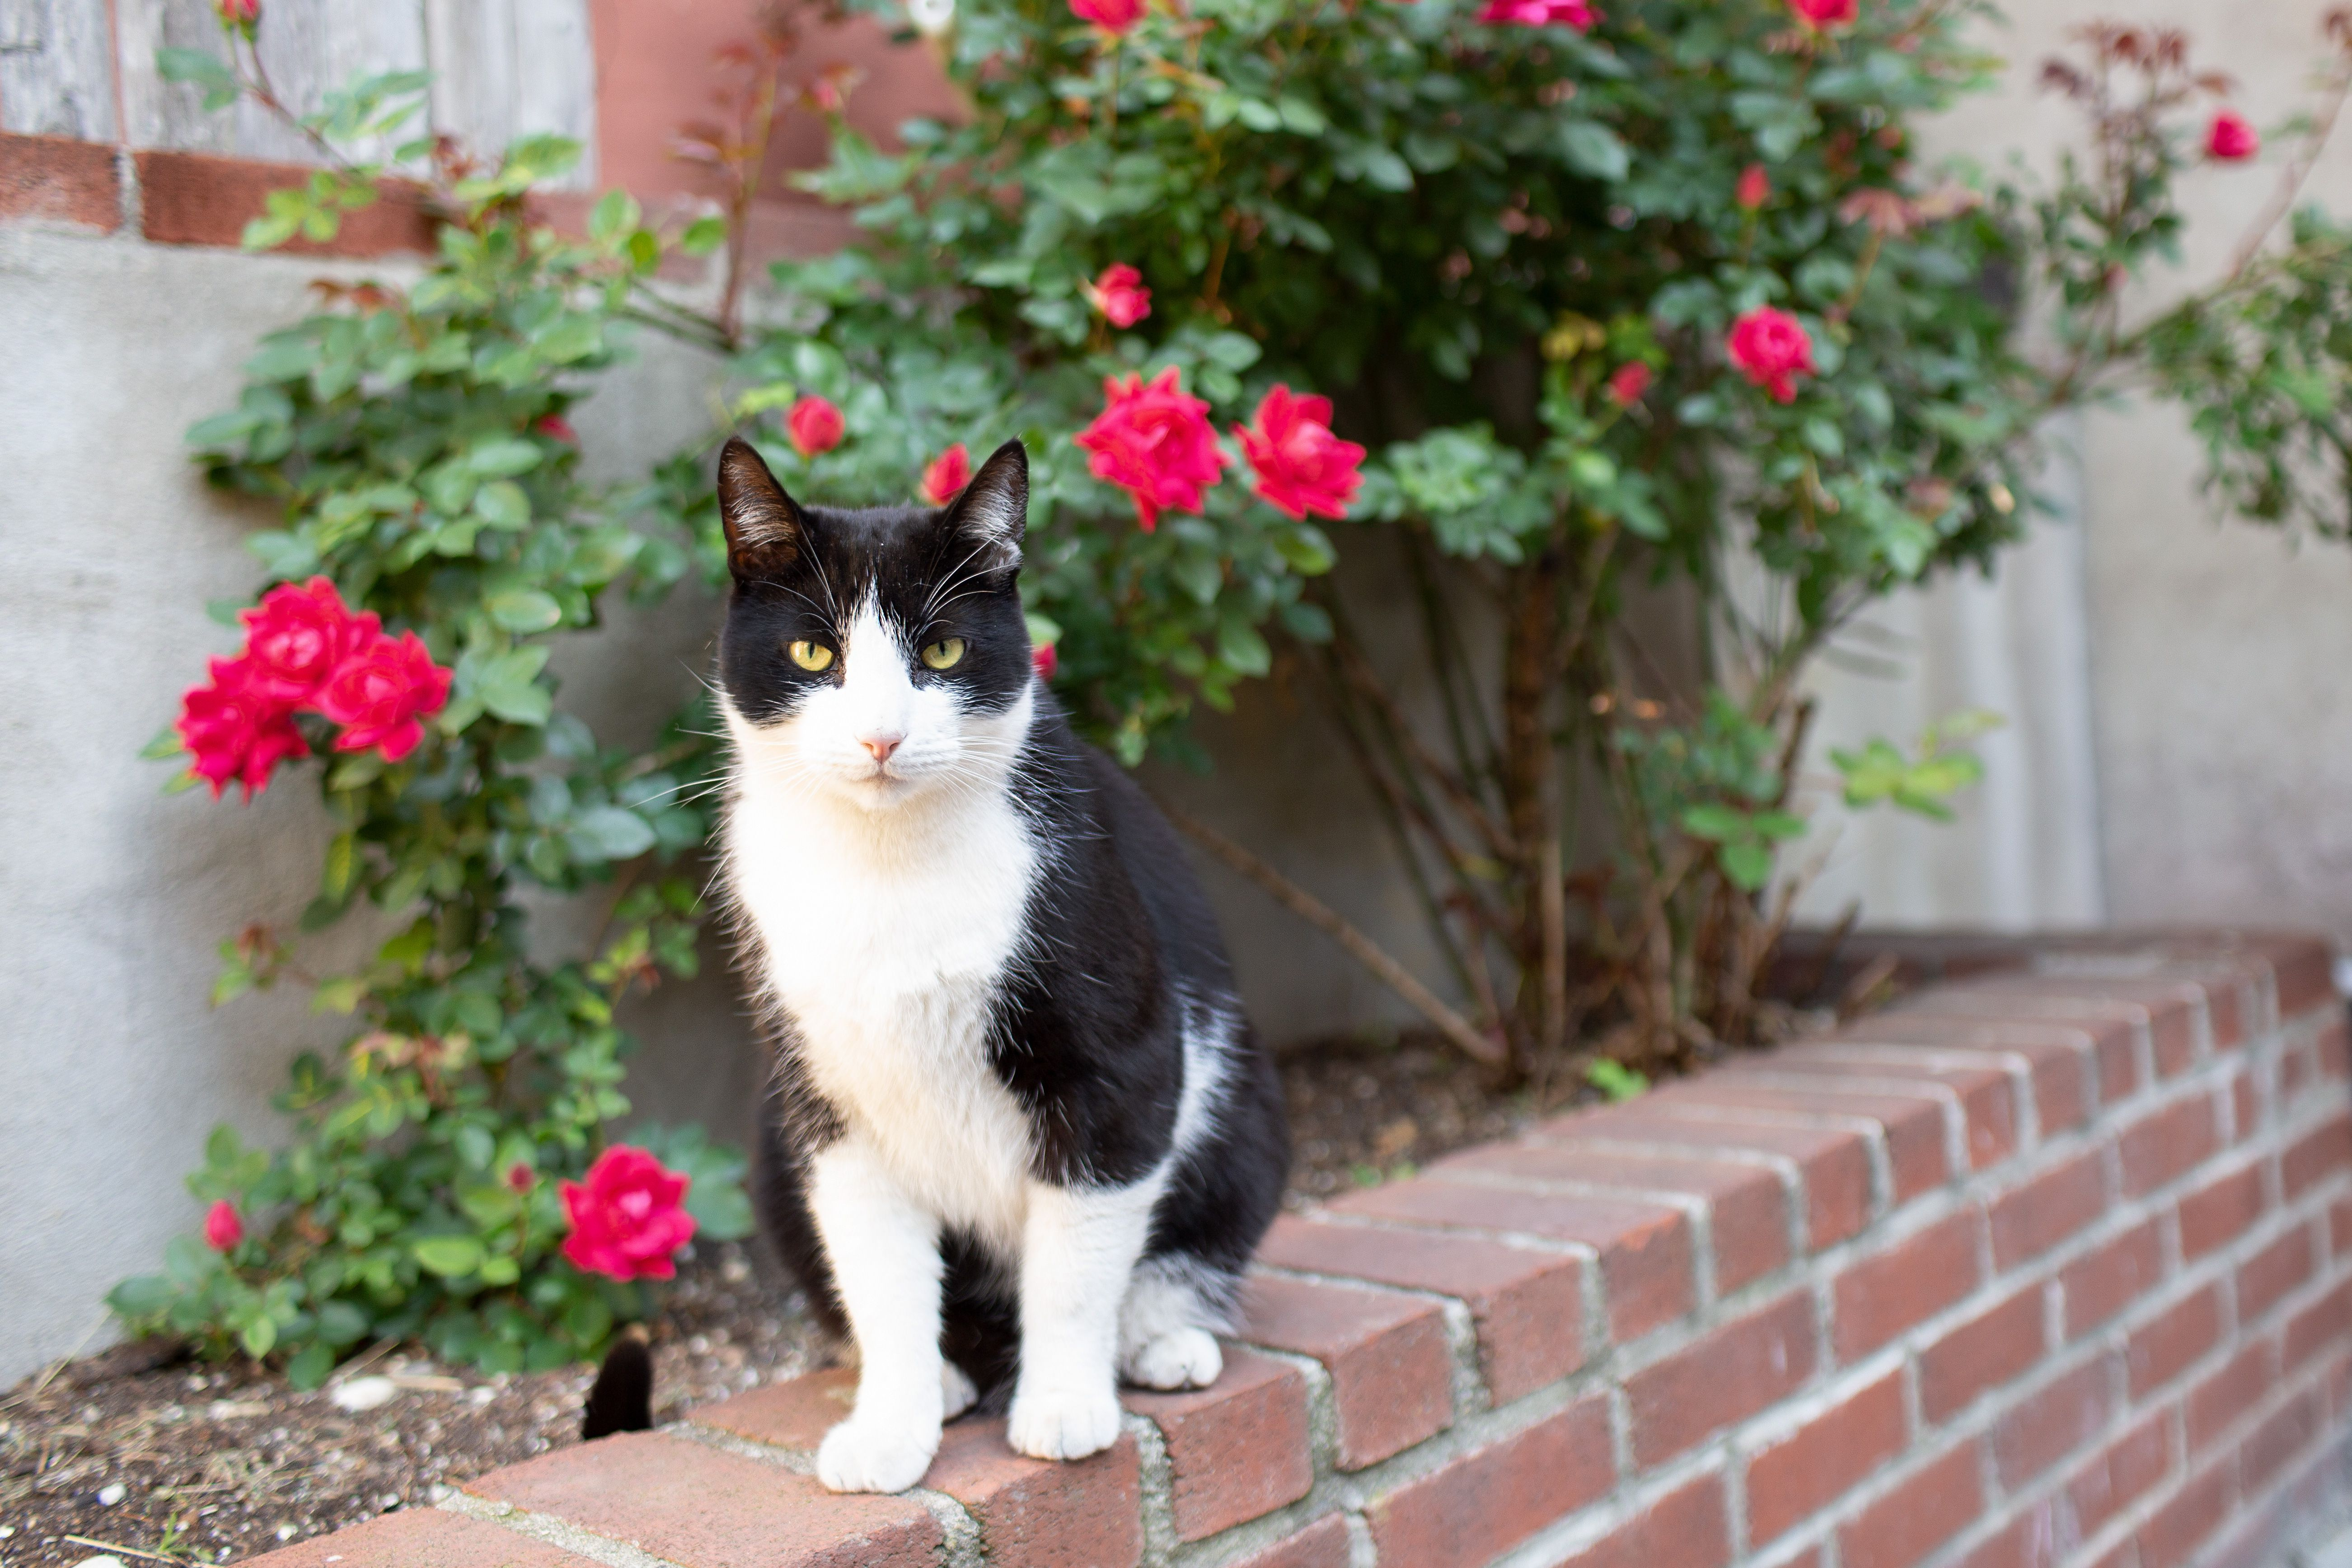 Stray Domestic cat Small indefinite amount Approximately House